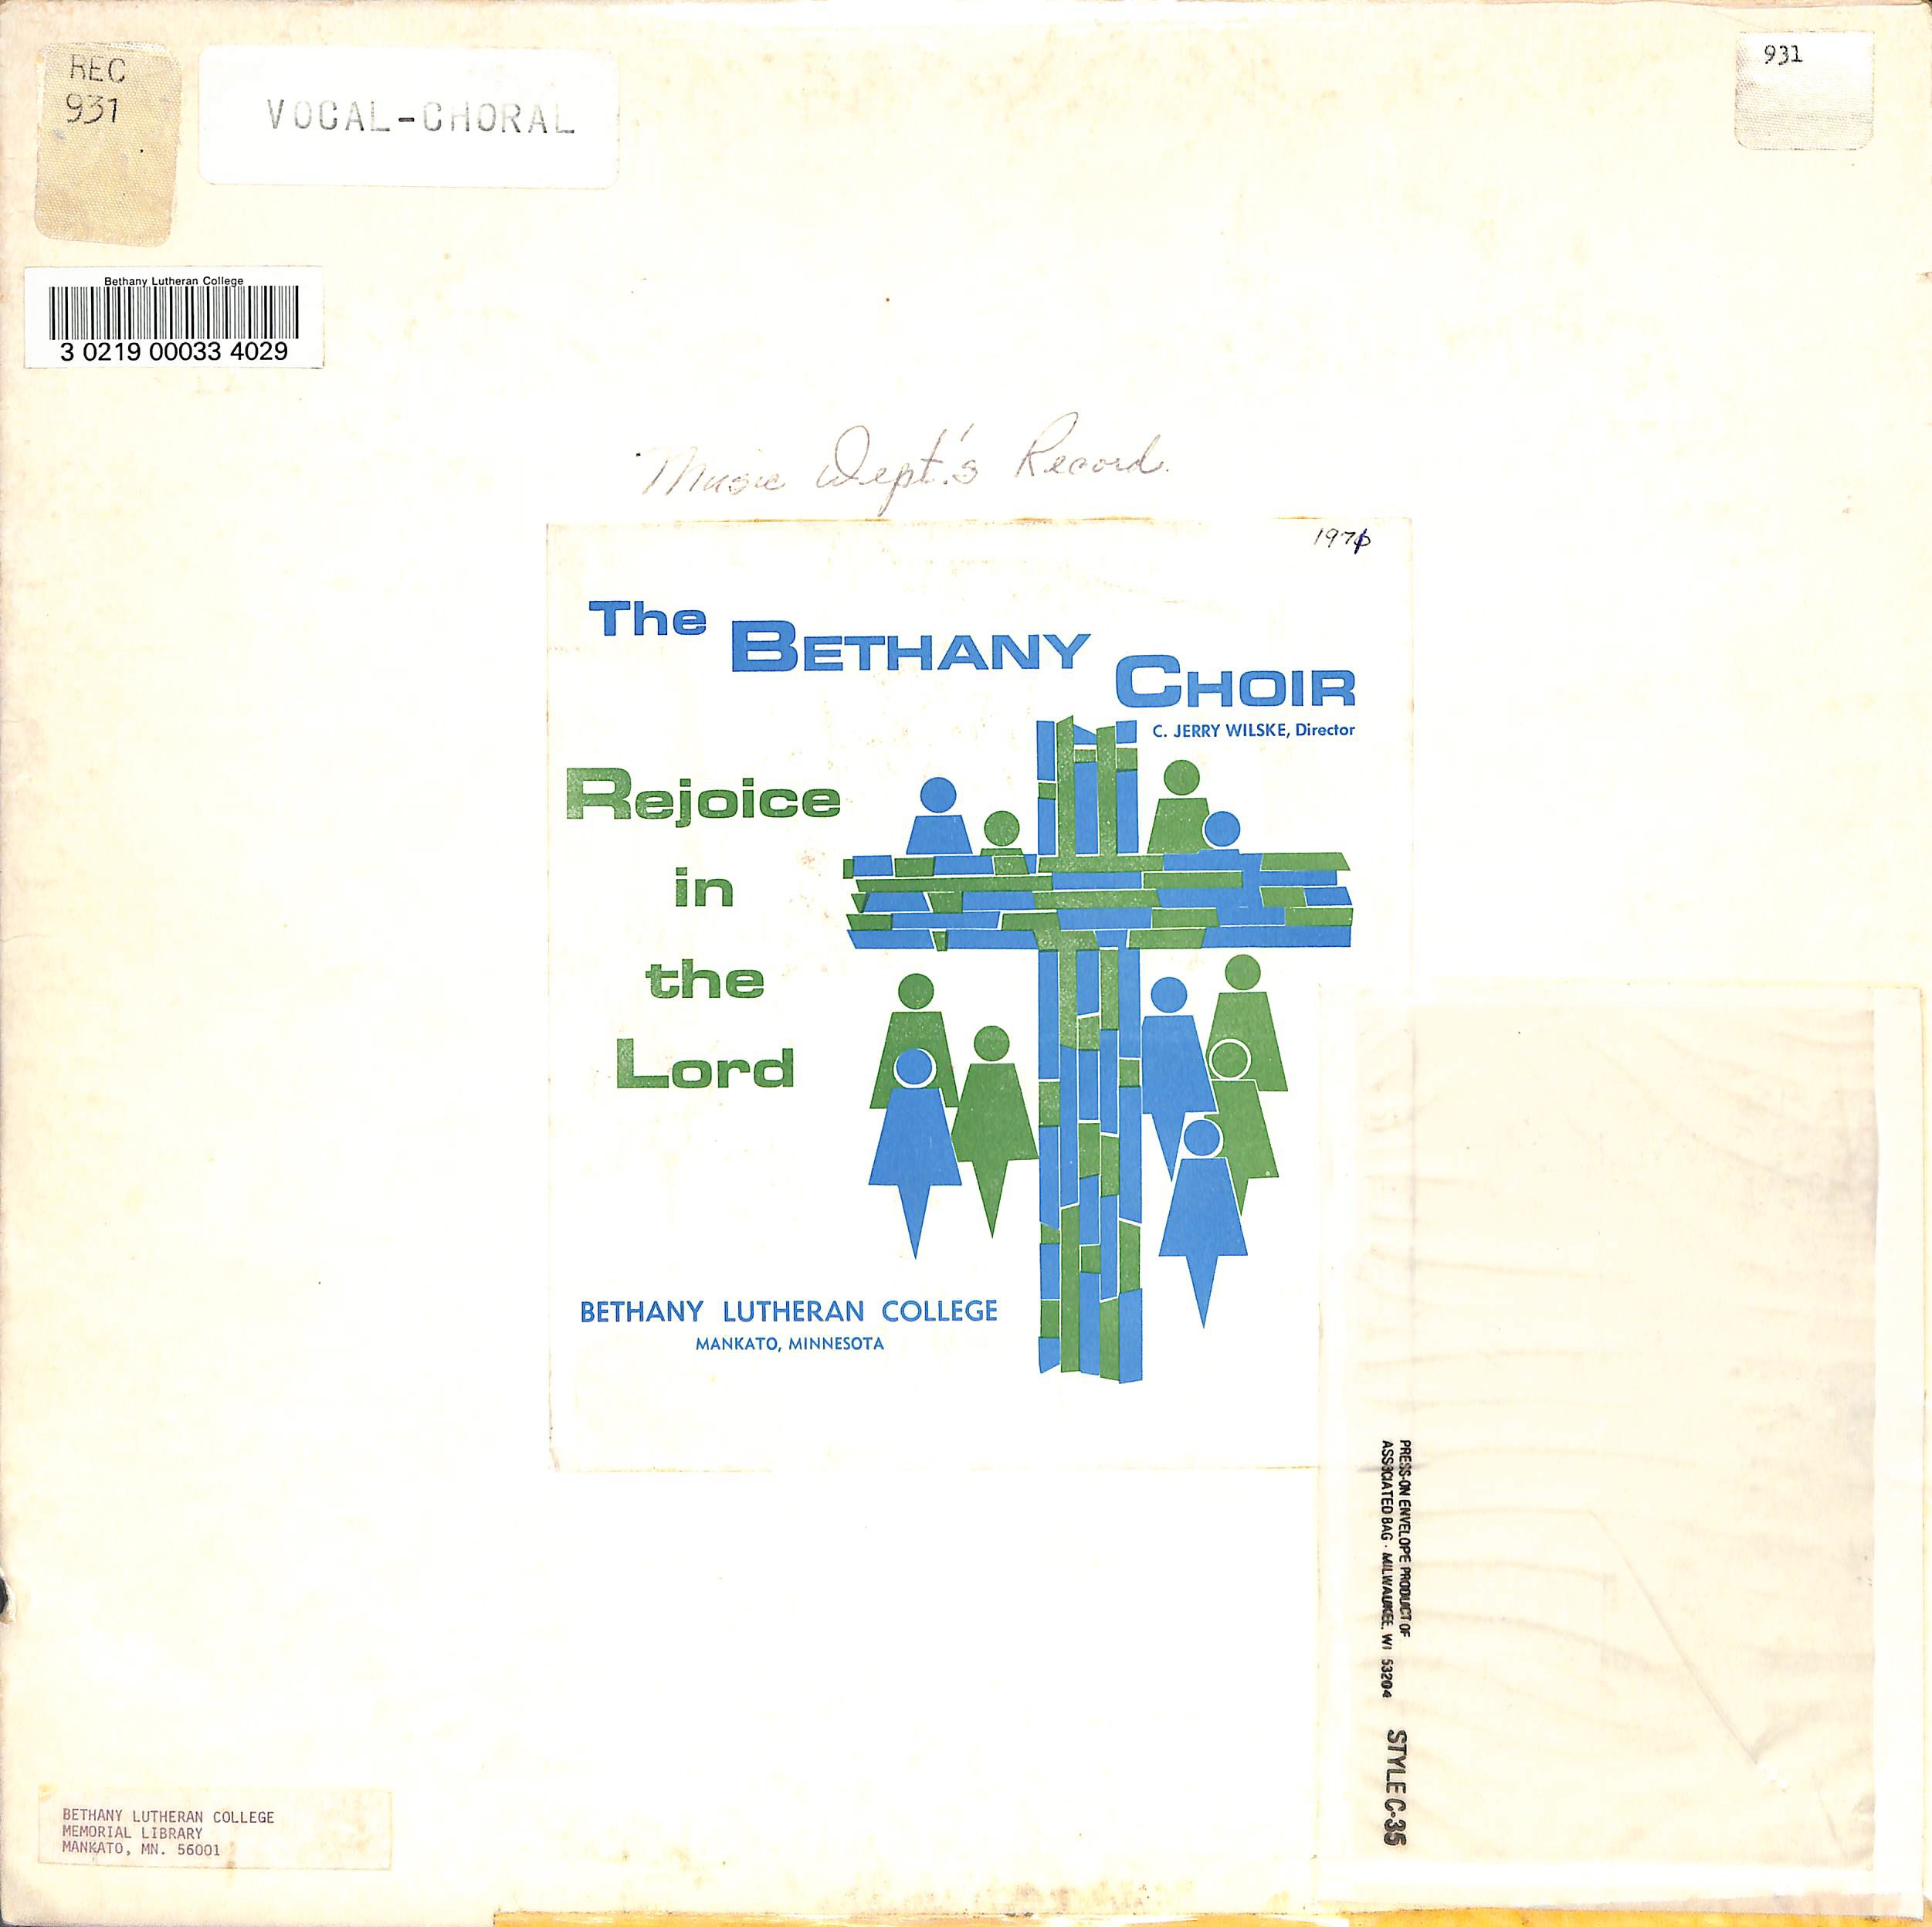 The Bethany Choir 1971: Rejoice in the Lord